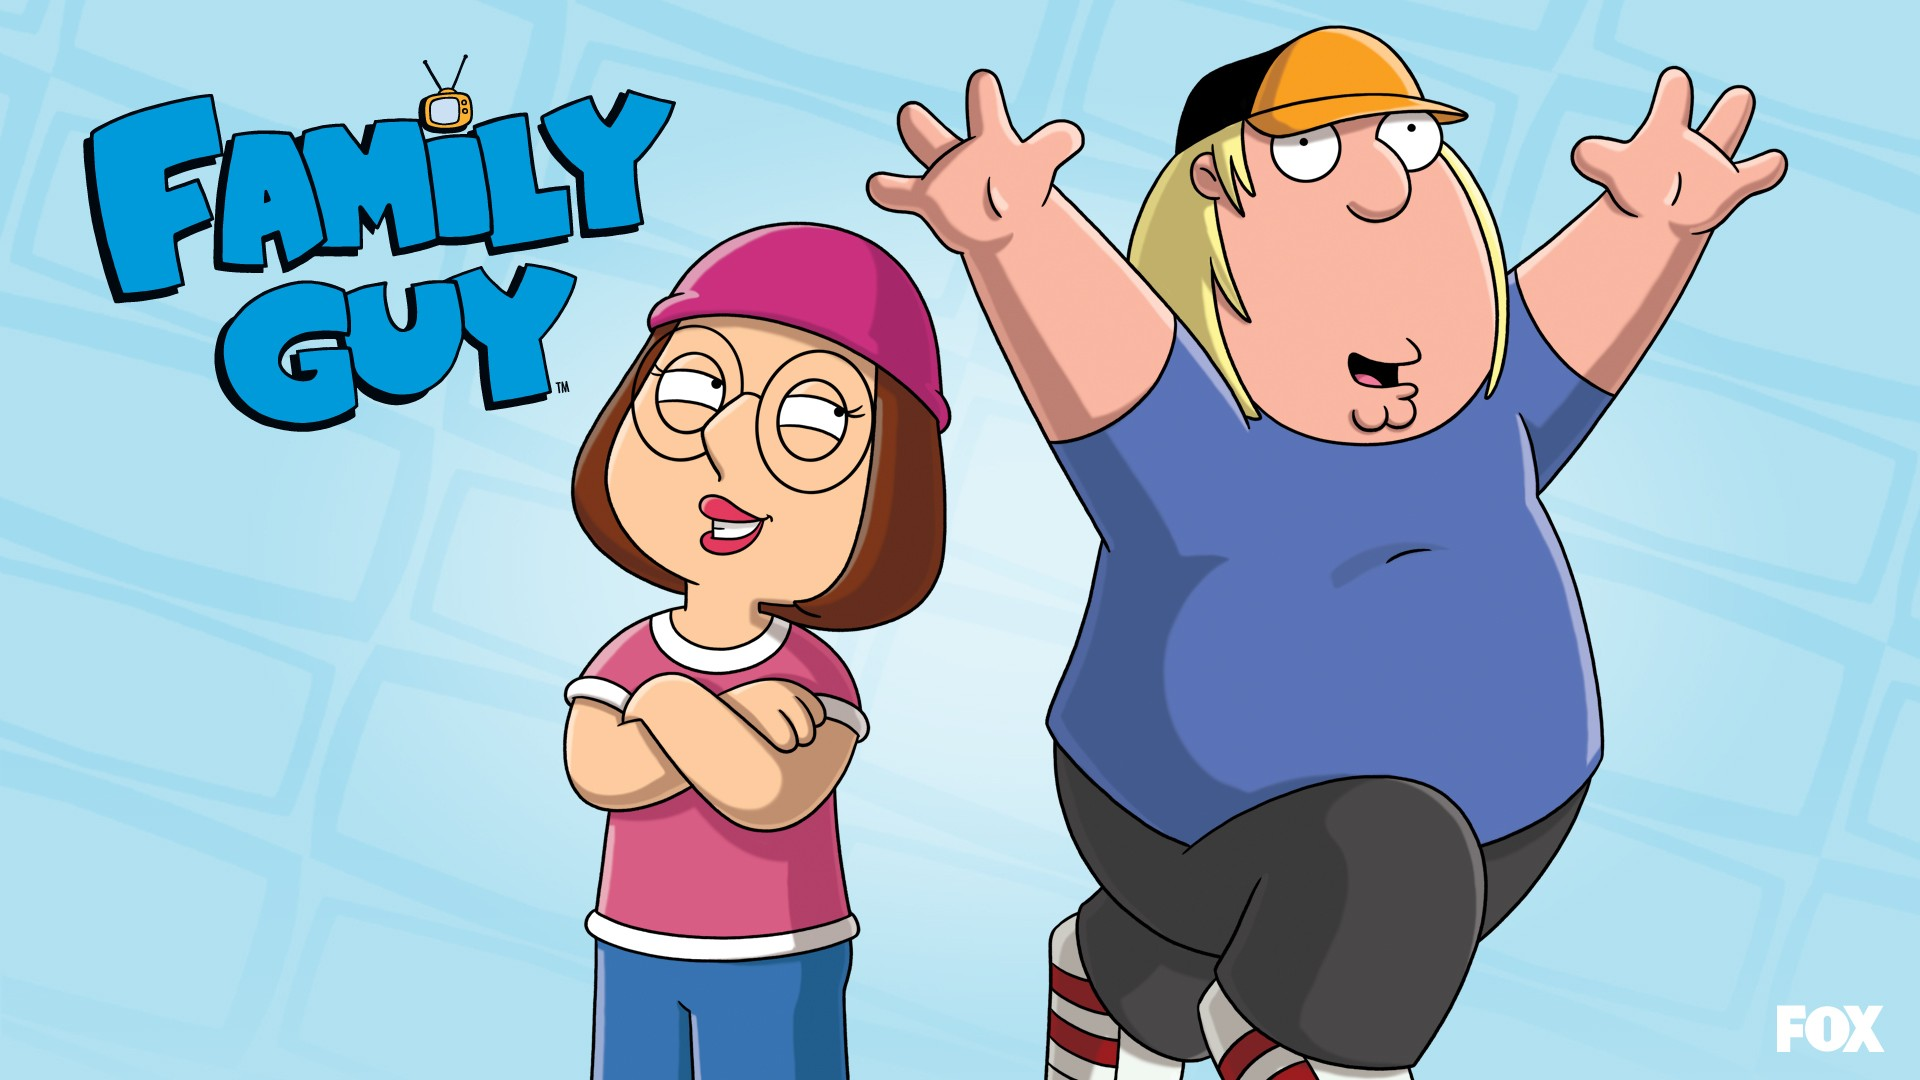 Family Guy Peter HD Desktop Wallpaper HD Desktop Wallpaper 1920x1080